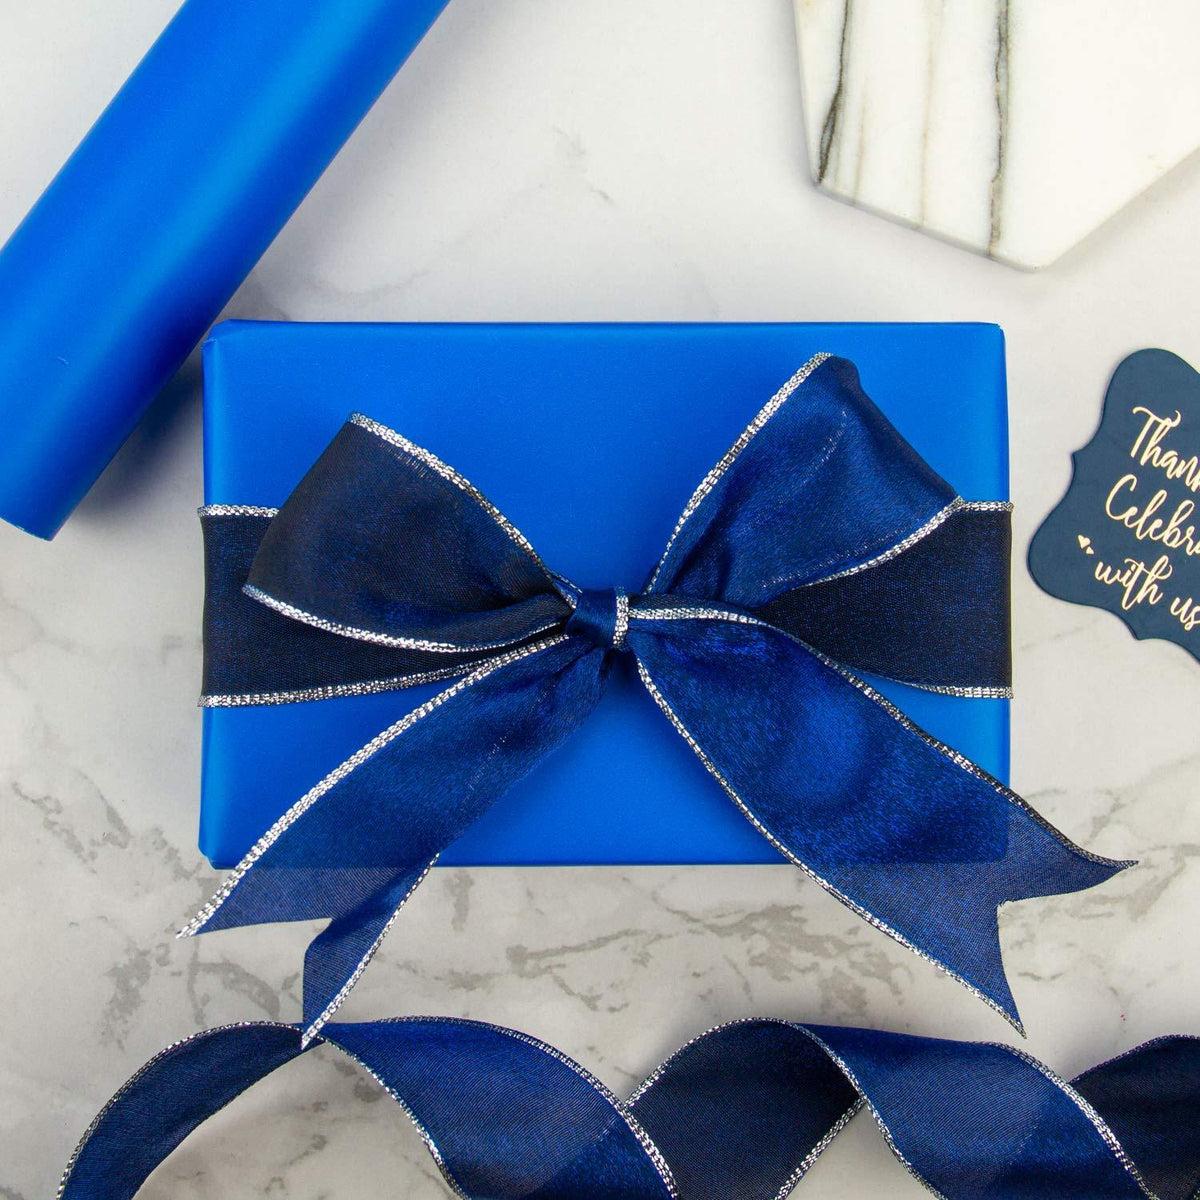 wrapaholic-glossy-royal-blue-gift-wrapping-paper-roll-5